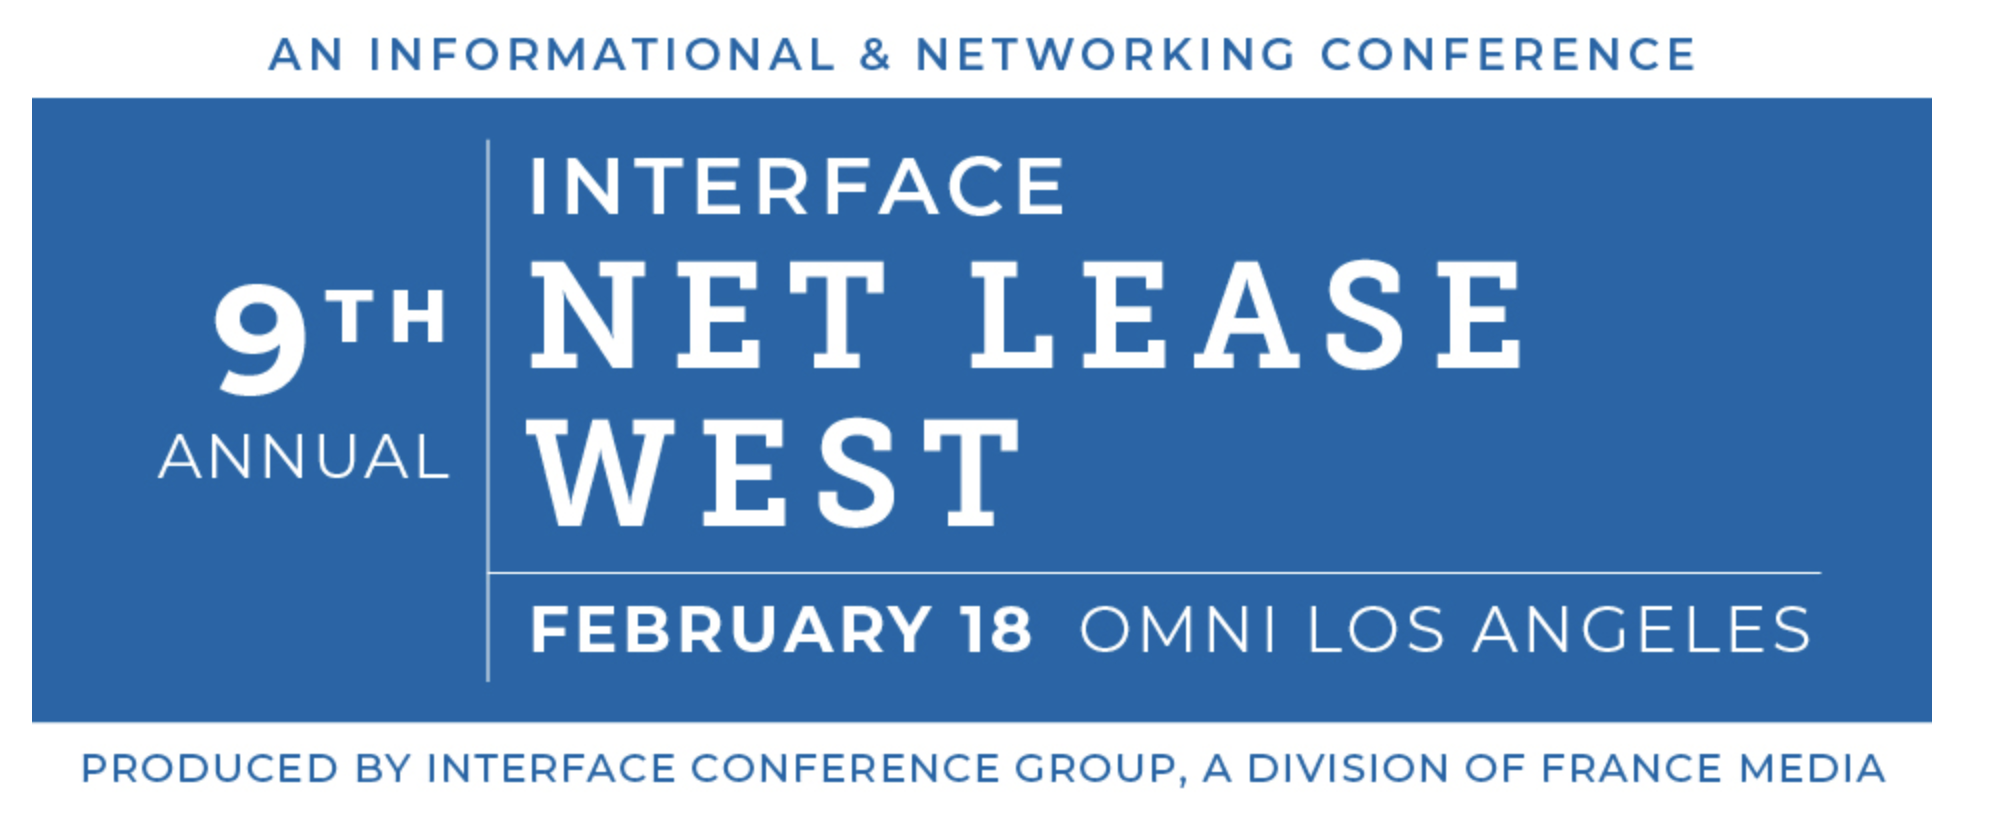 InterFace Net Lease West - Los Angeles 2020